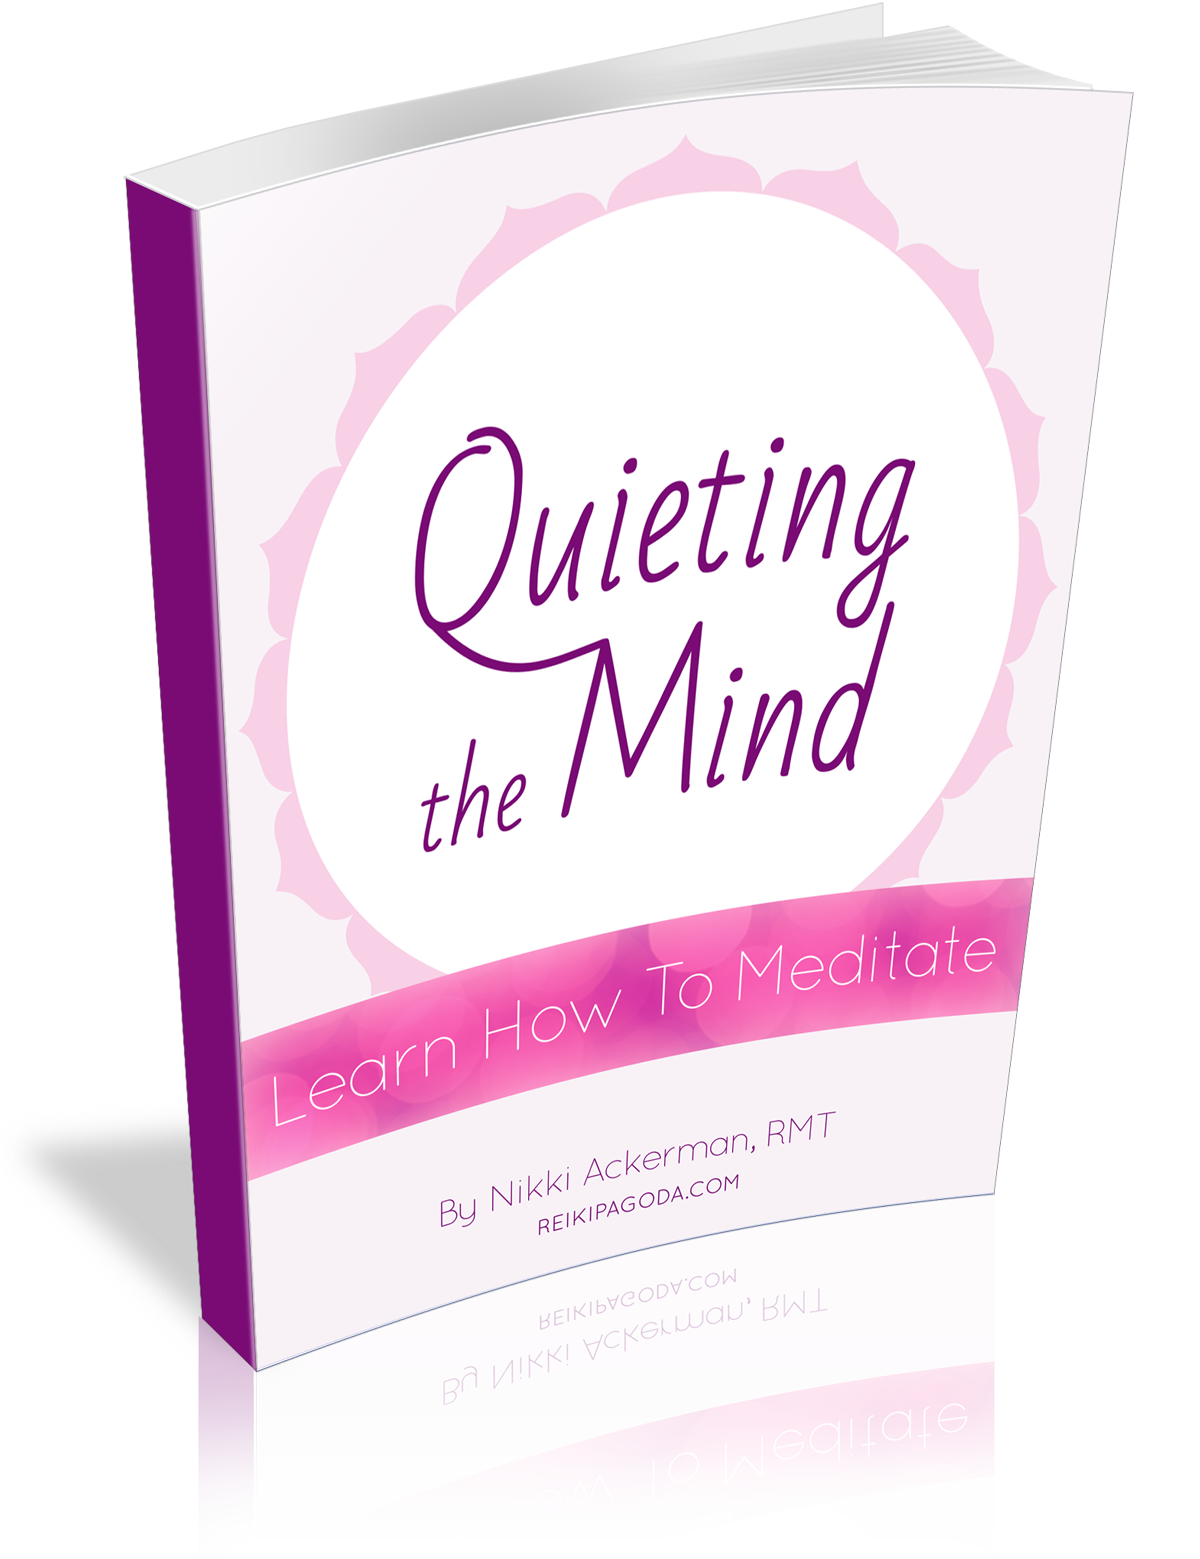 Quieting the Mind: Learn How to Meditate e-Guide by Nikki Ackerman, RMT